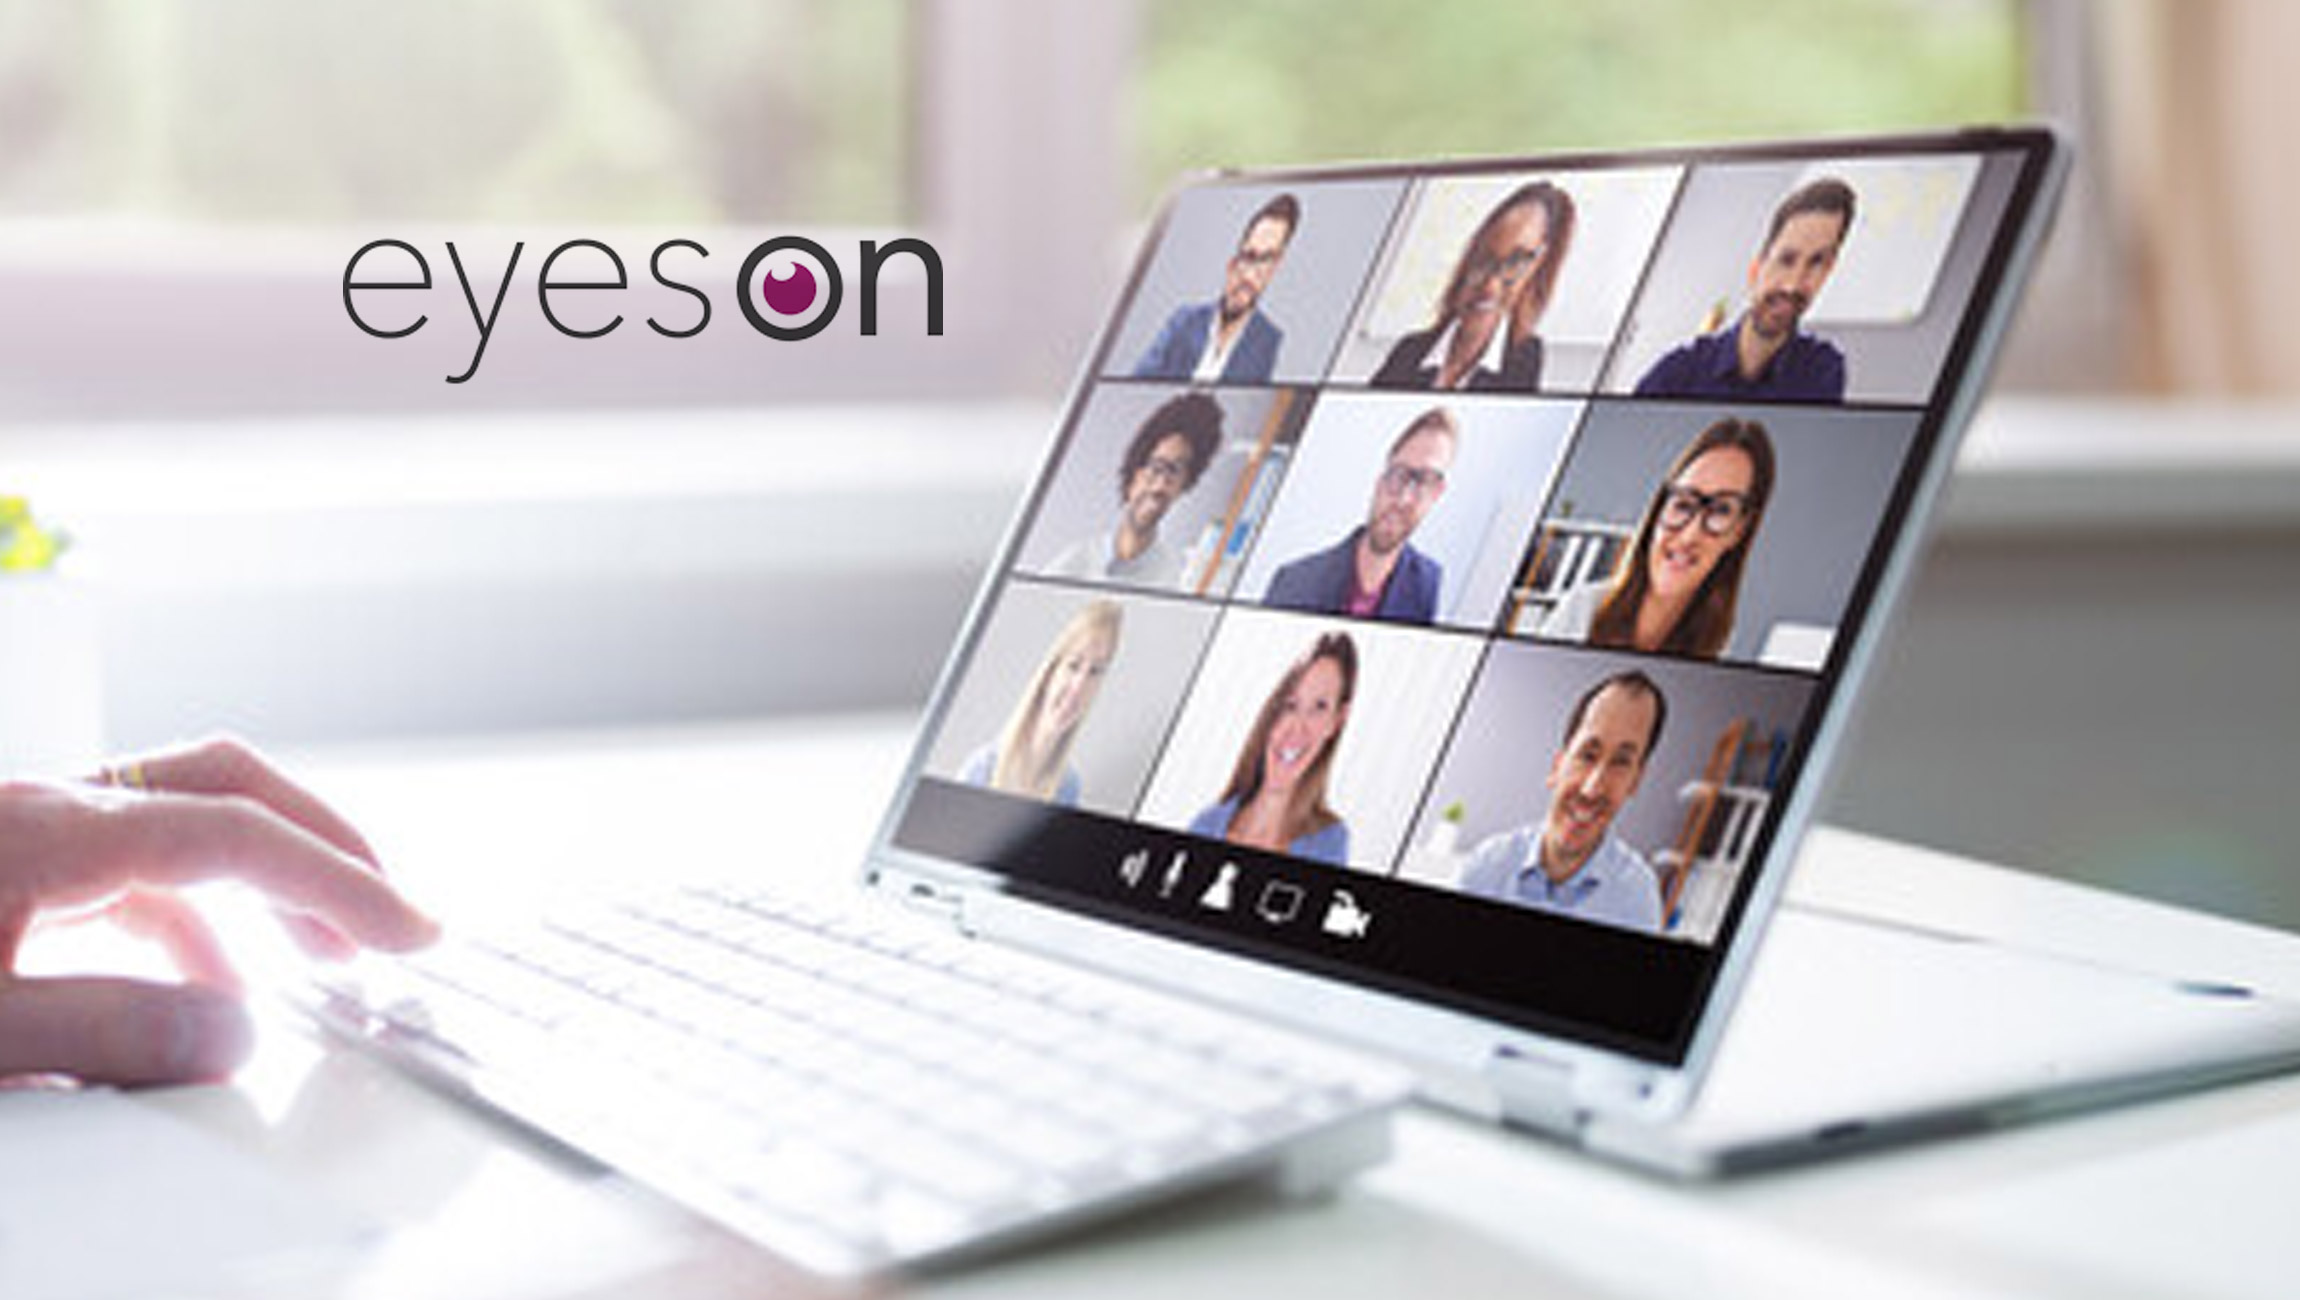 eyeson Single Stream Technology For Low CO2 Video Meetings